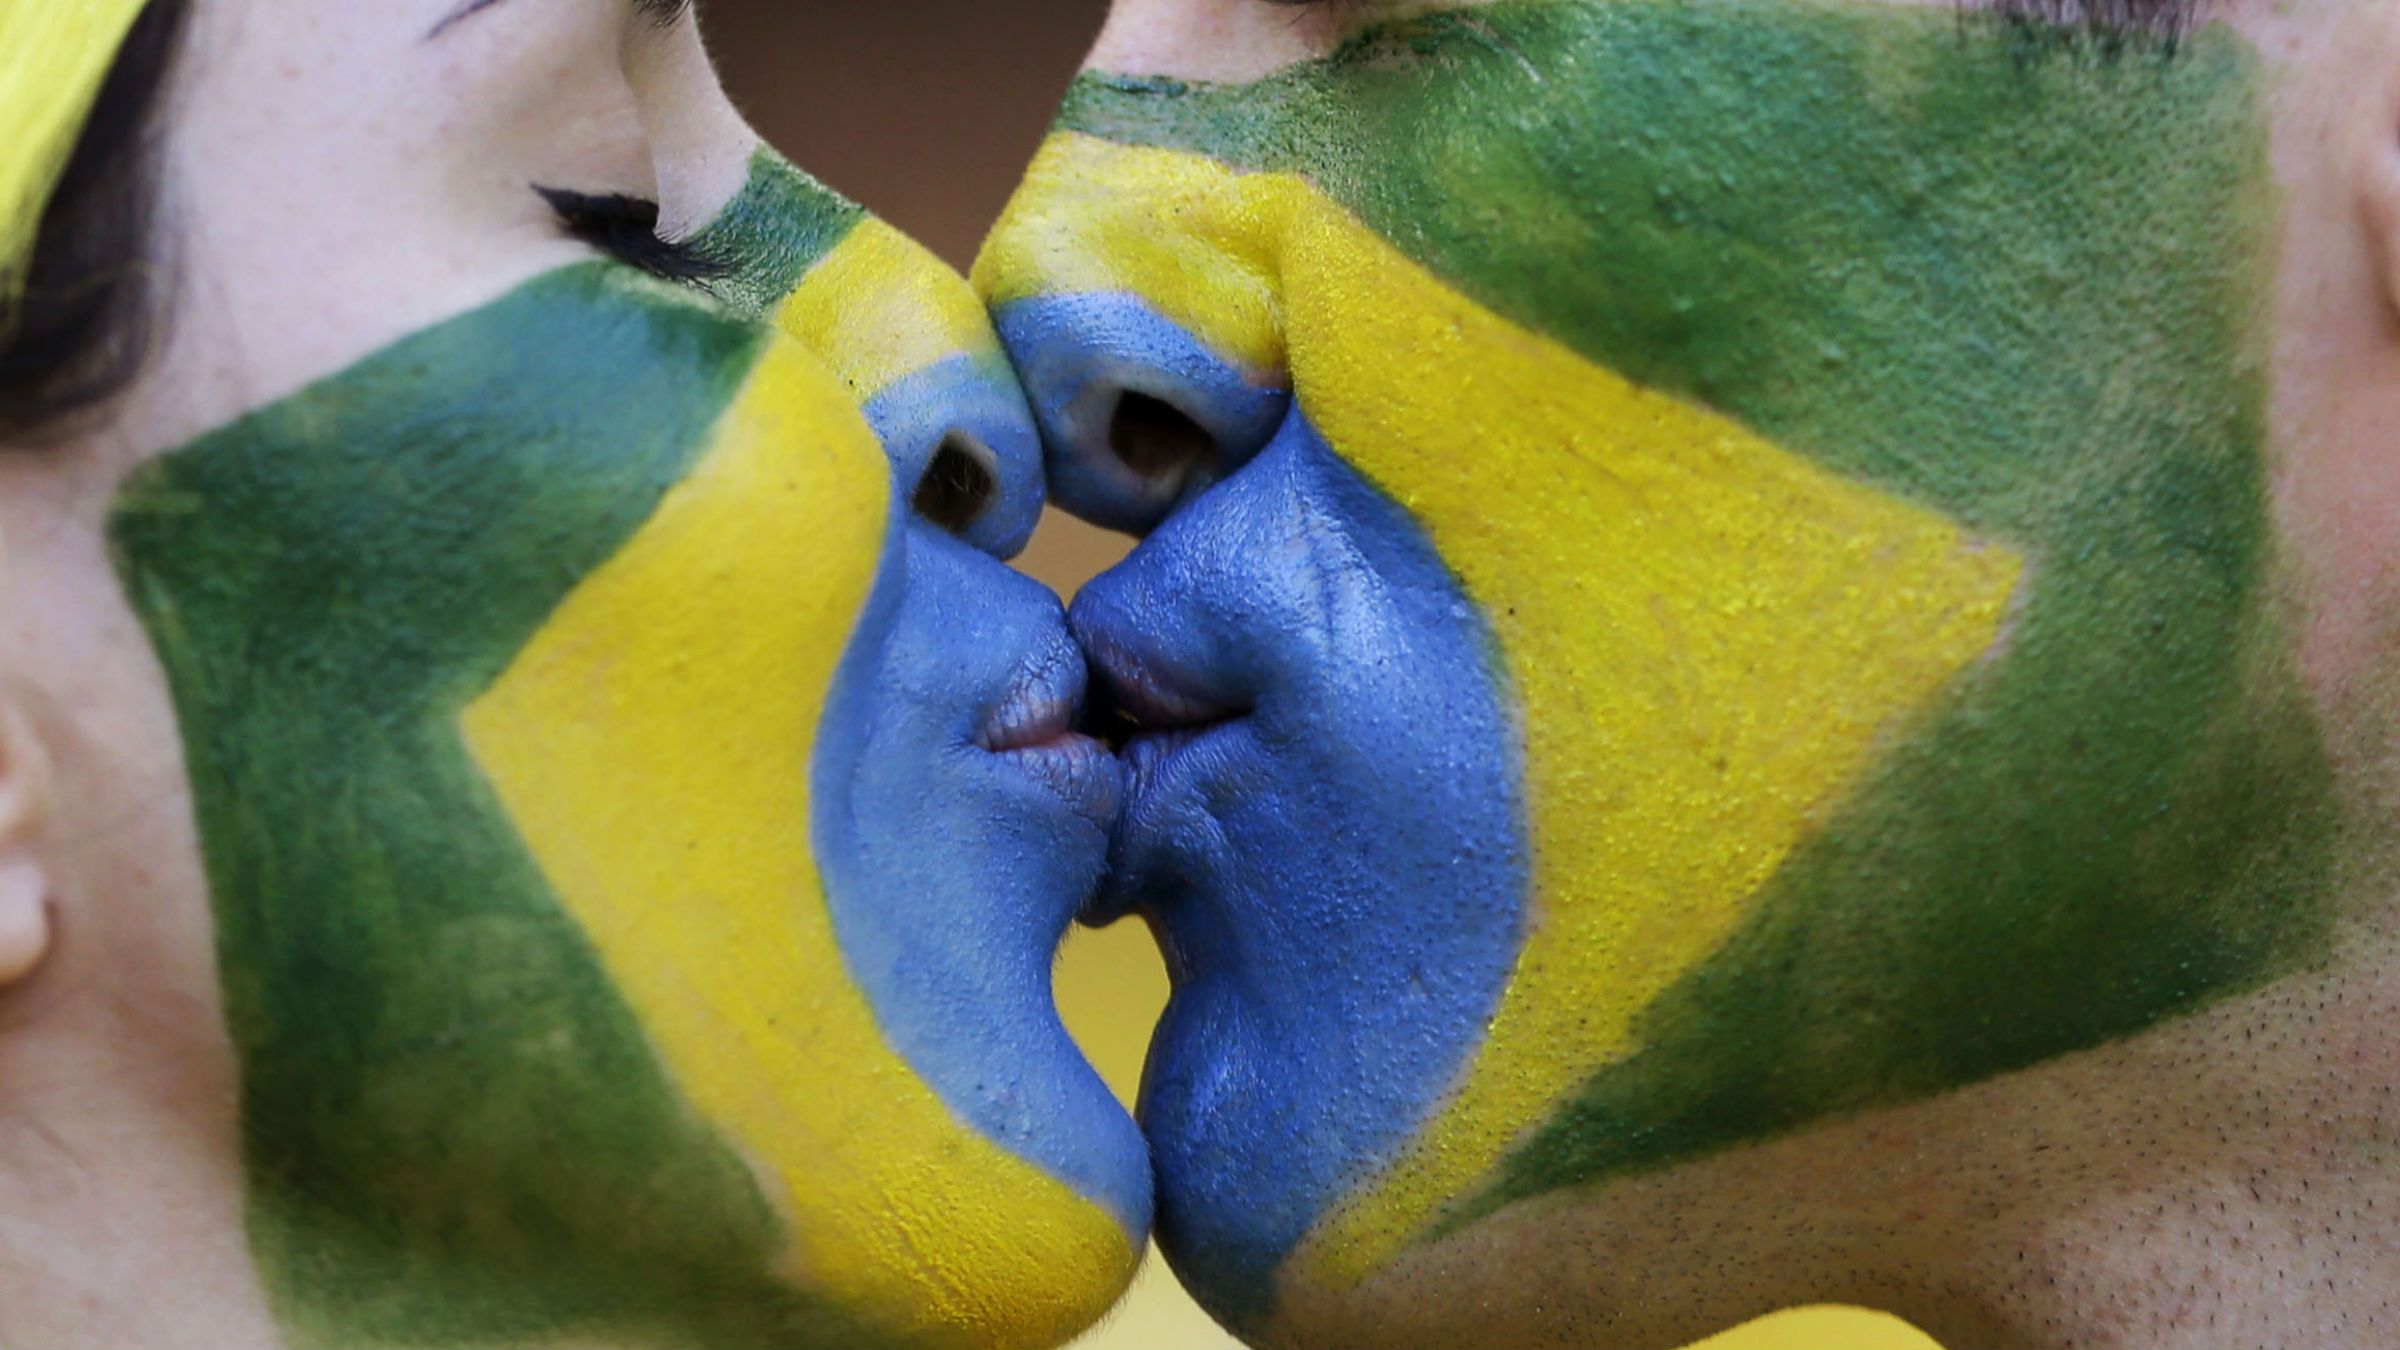 Brazil supporters at the world cup